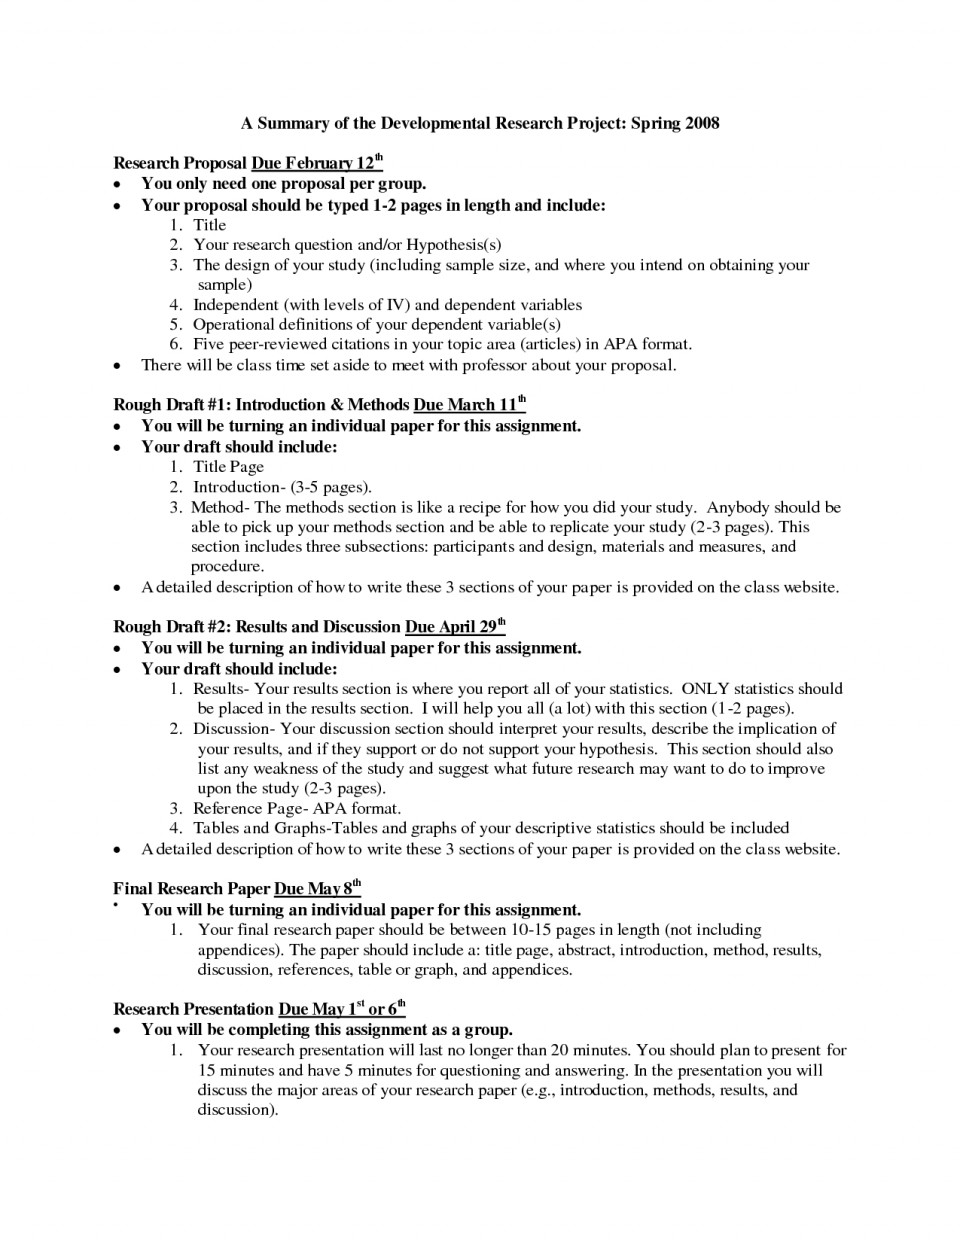 012 Good Research Paper Topic Psychology Undergraduate Resume Unique Sample Singular Topics For High School 2019 Easy Reddit 960